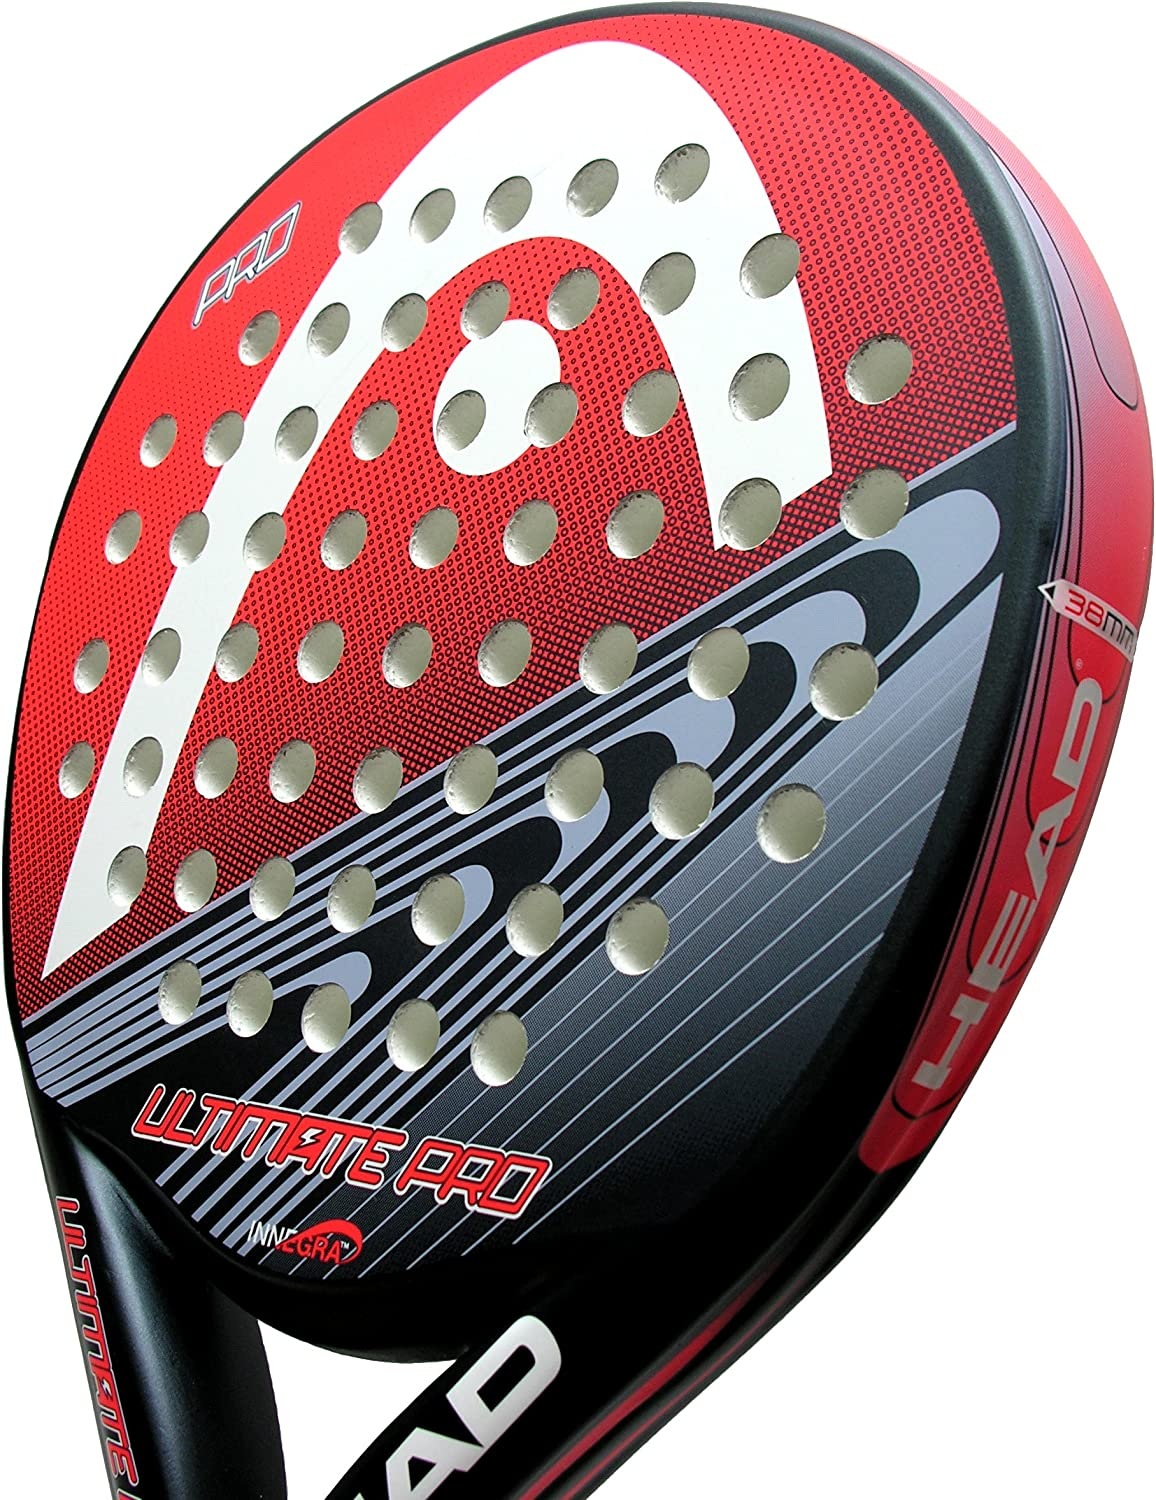 Pala de padel - Head Ultimate Pro 2015: Amazon.es: Deportes y aire ...